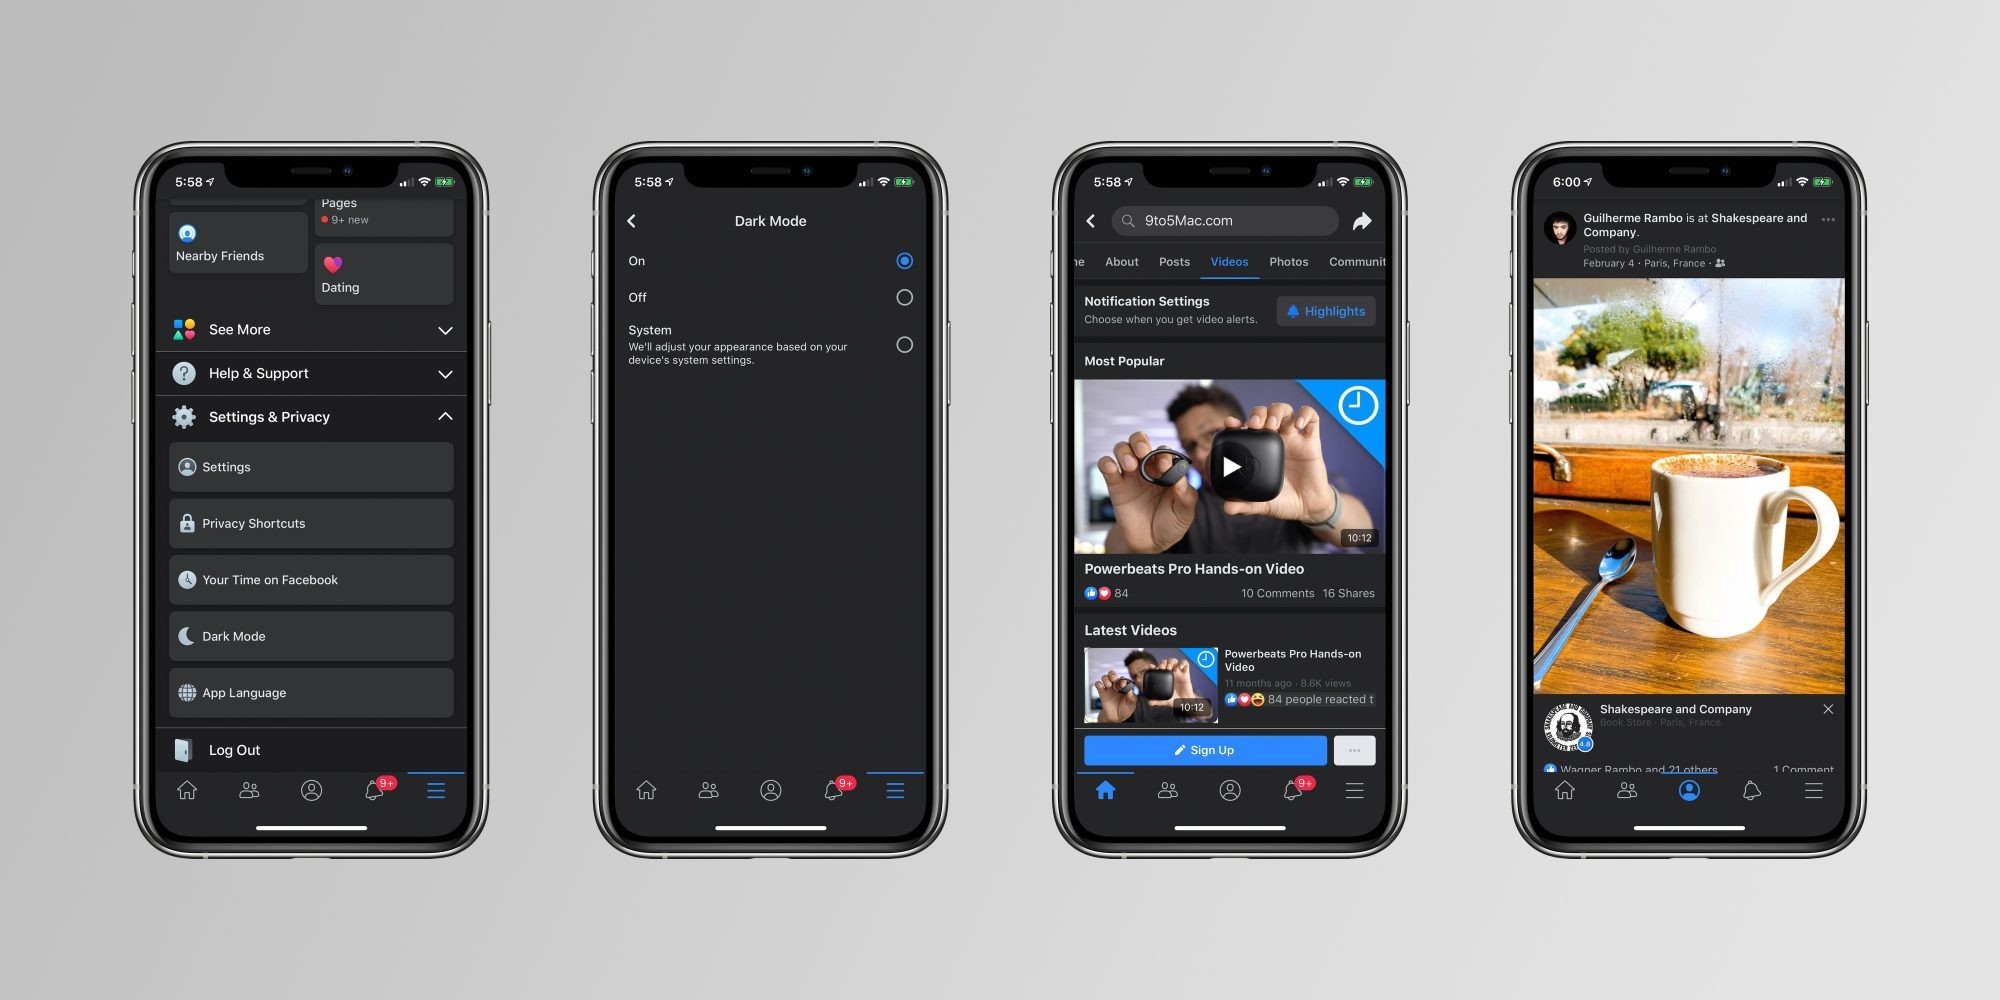 Facebook déploie le mode sombre sur son application mobile